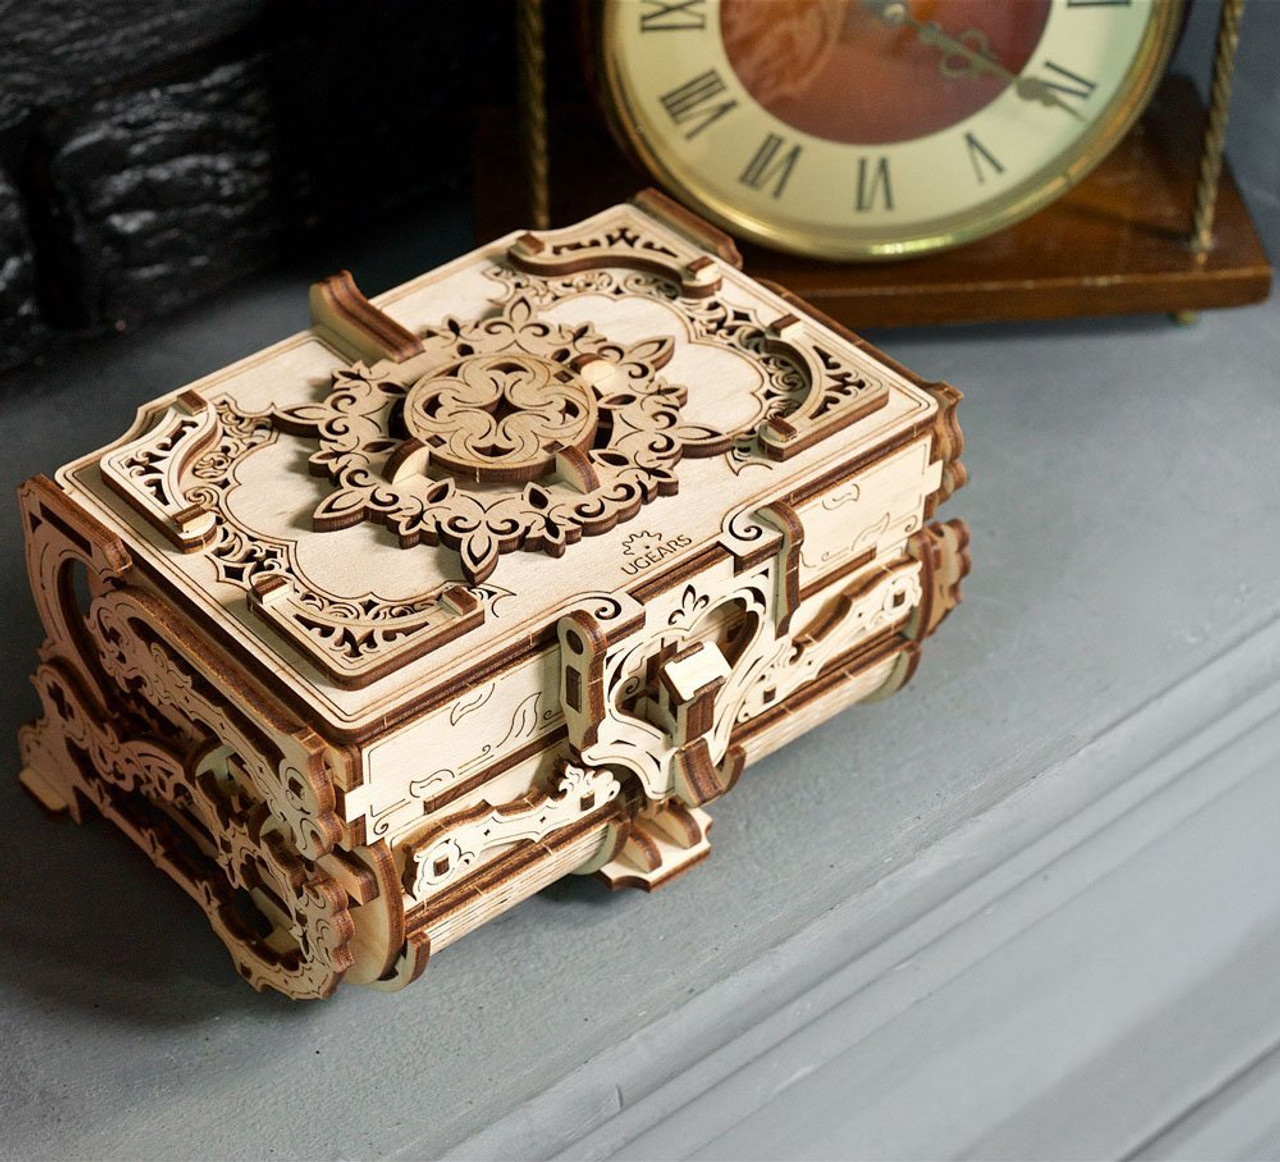 uGears ANTIQUE BOX 70089 Wooden Mechanical Construction jewelery 3D Puzzle kit